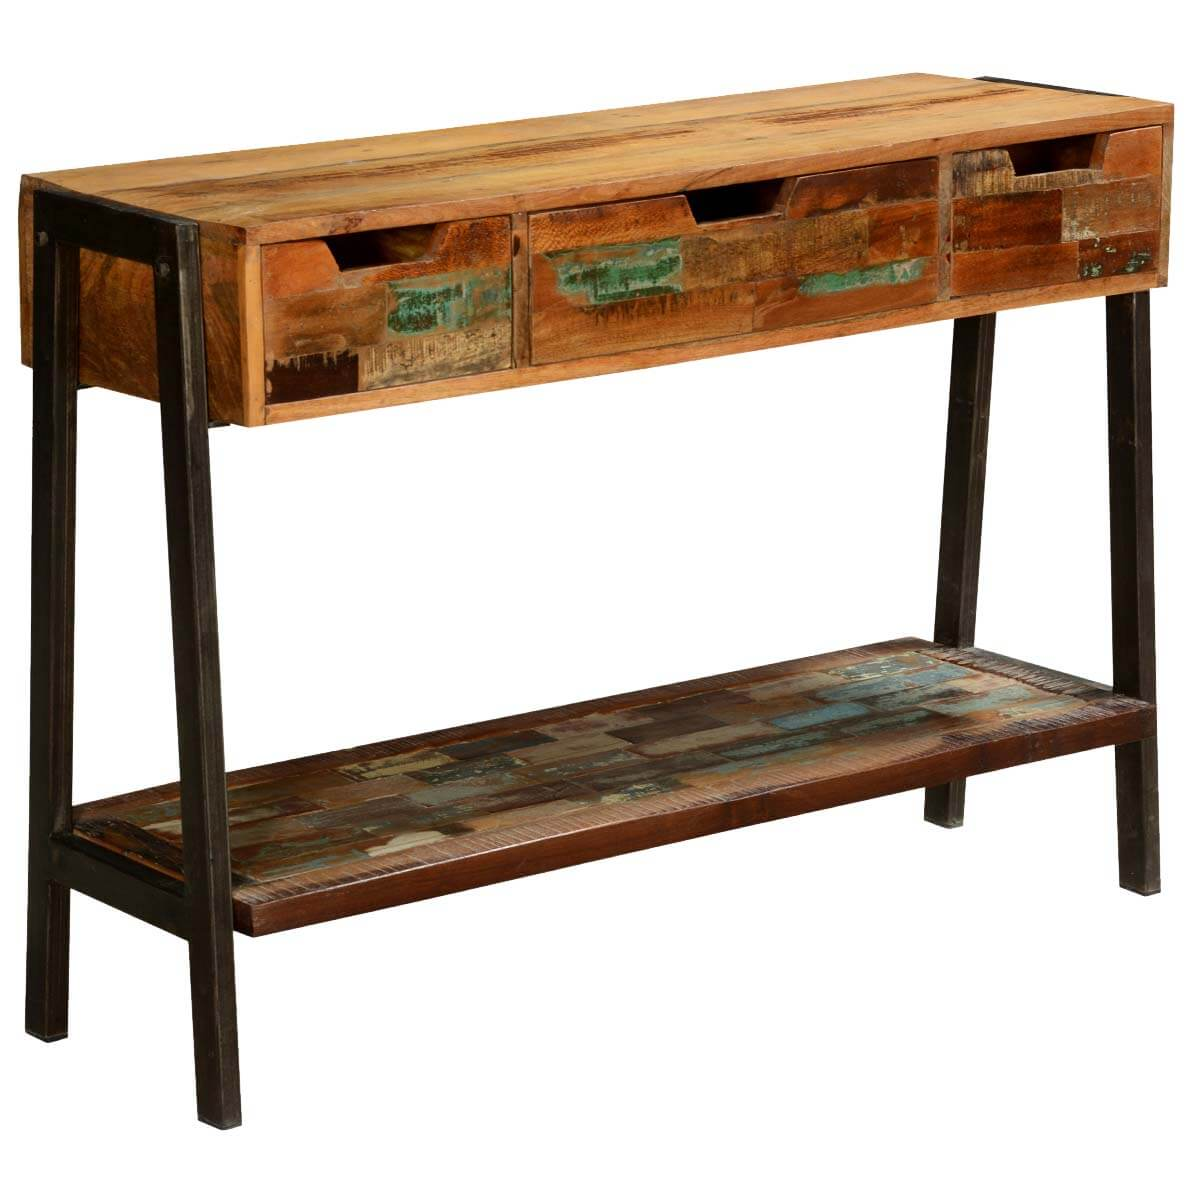 Foyer Console Questions : Painted bricks reclaimed wood iron hall console w drawers